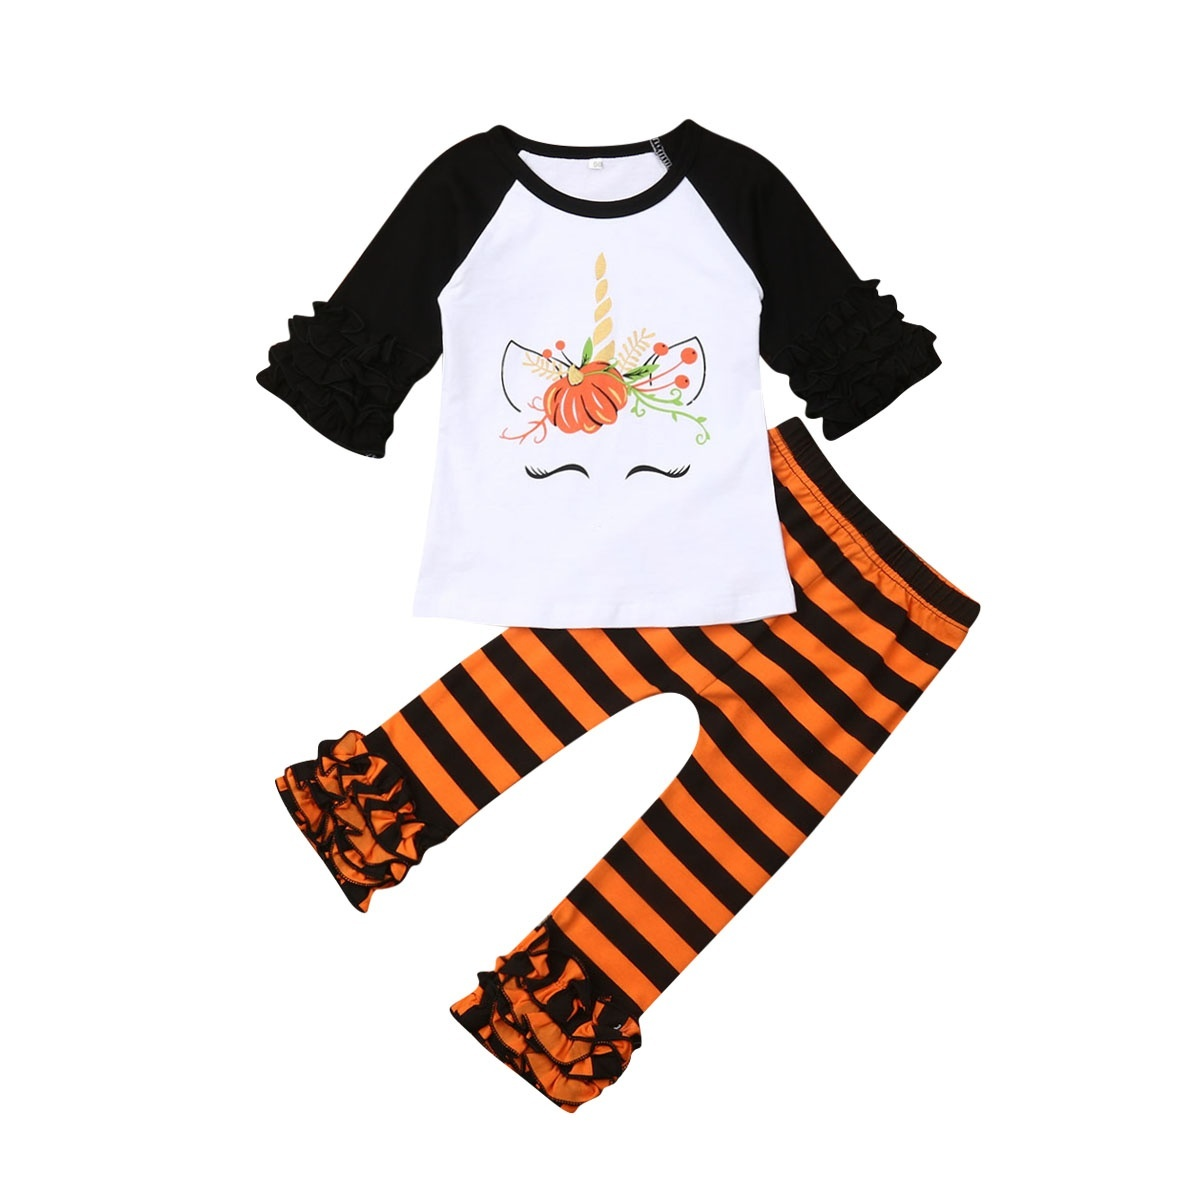 pants Kids Clothes Set 2PCS Toddler Girls Baby Outfits Stripe T Shirt Tops